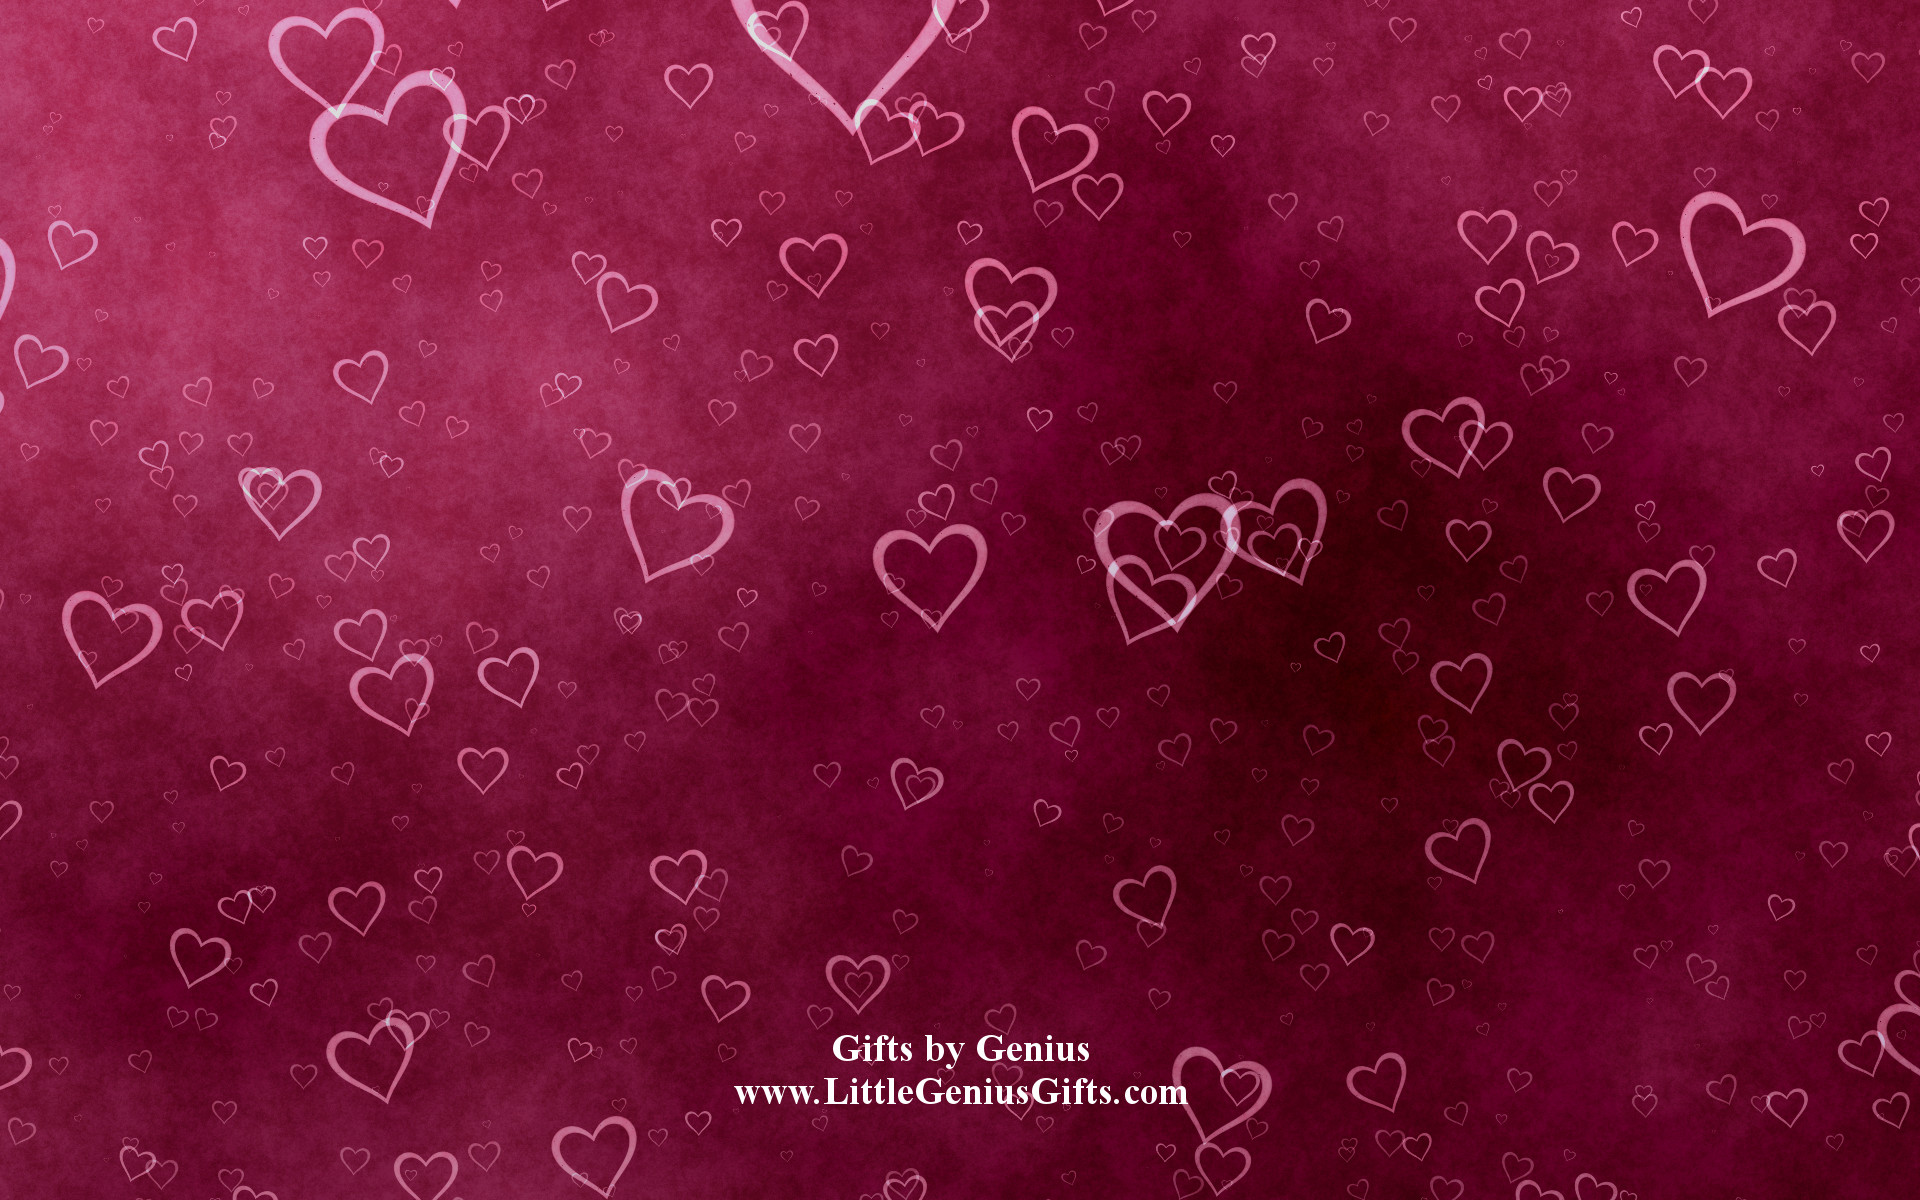 1920x1200 Valentines Day Computer Desktop Wallpapers Gifts by Genius